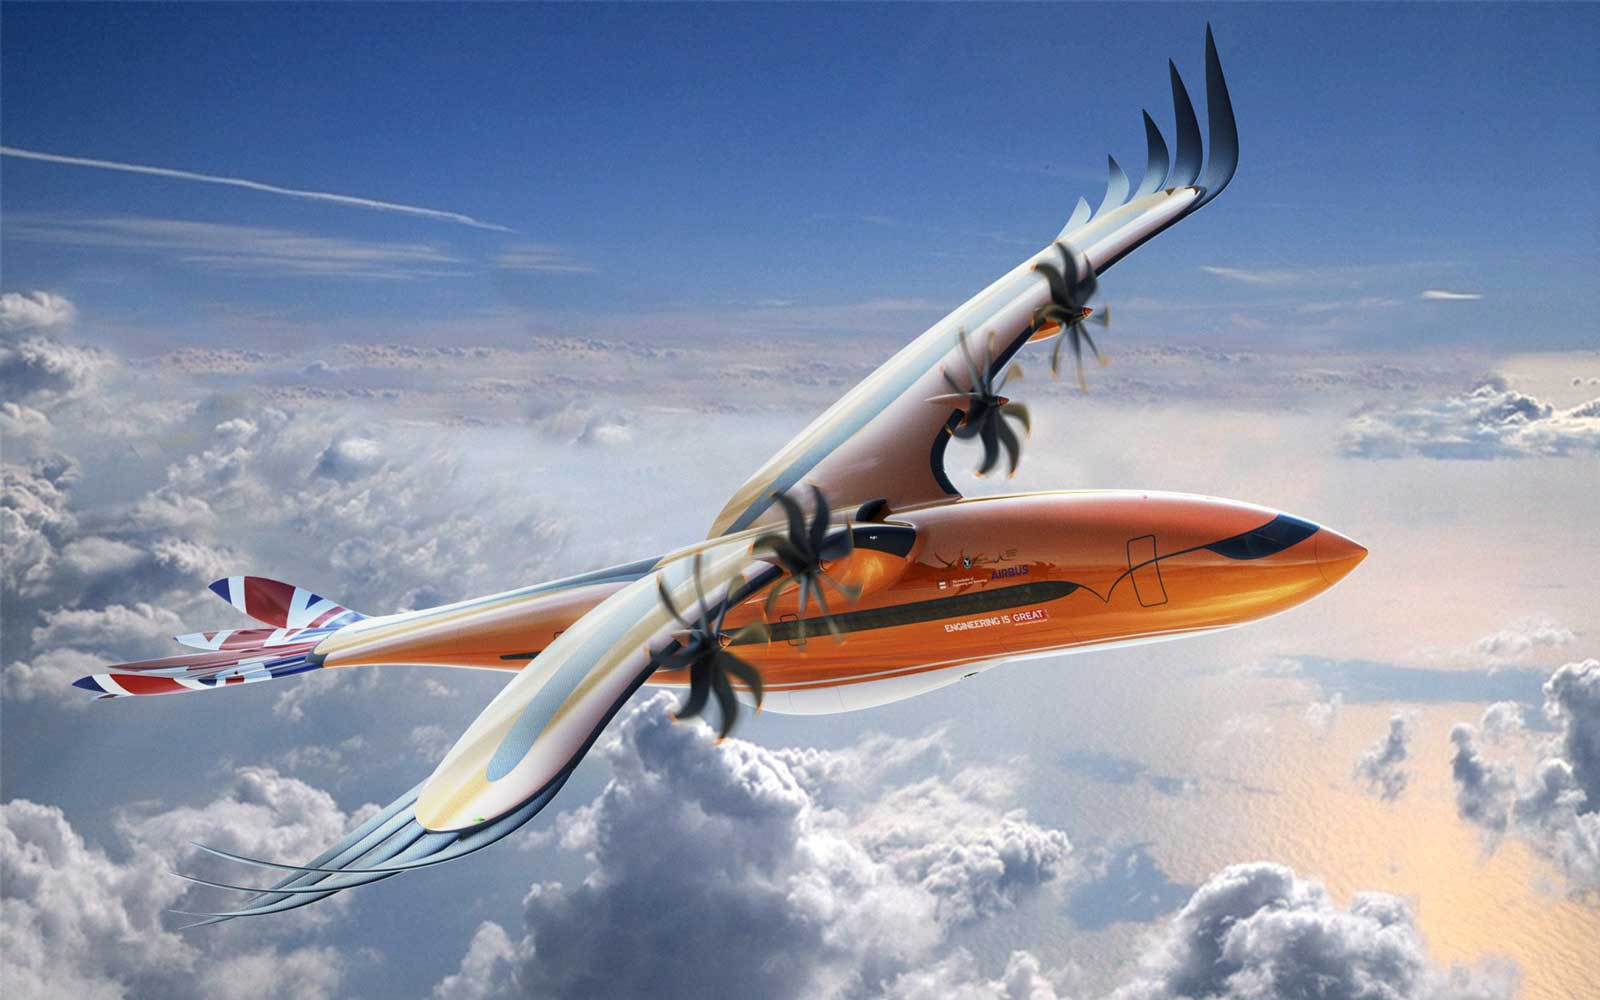 Airbus Unveils New Plane Concept Inspired by Birds of Prey